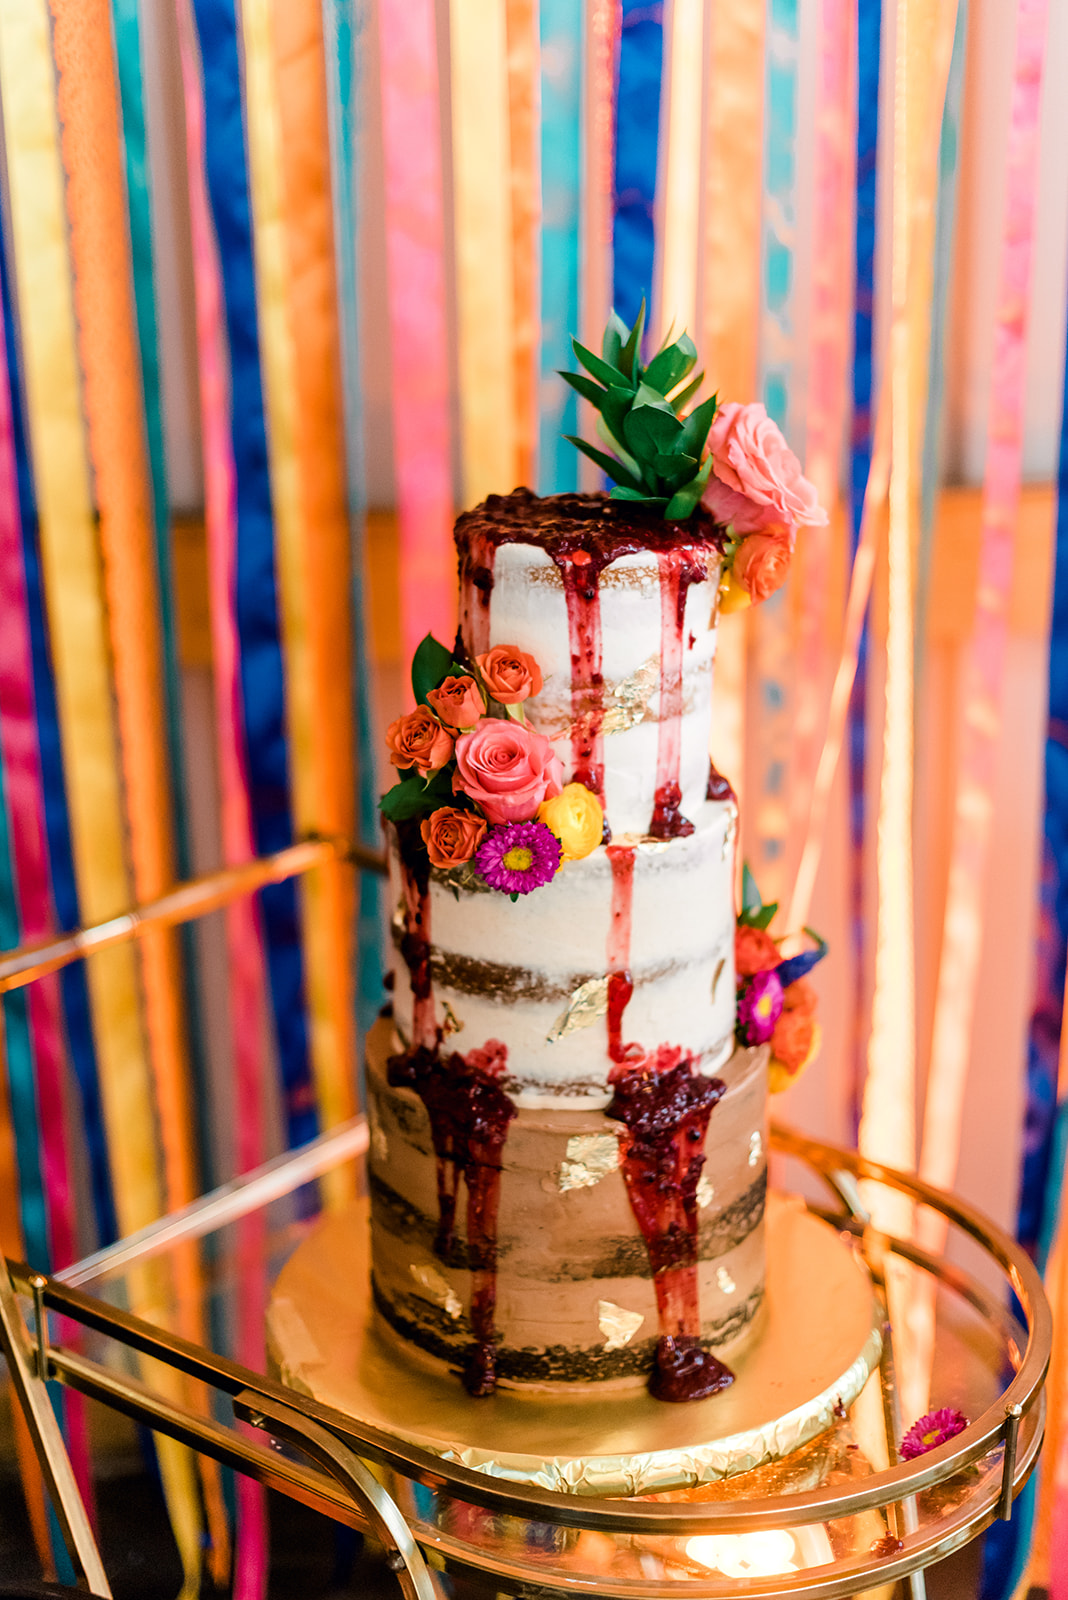 Fun & Colorful Barn Wedding Naked Cake with Flowers at Heaven Sent Farms in Avella Dawn Derbyshire Photography (3).jpg